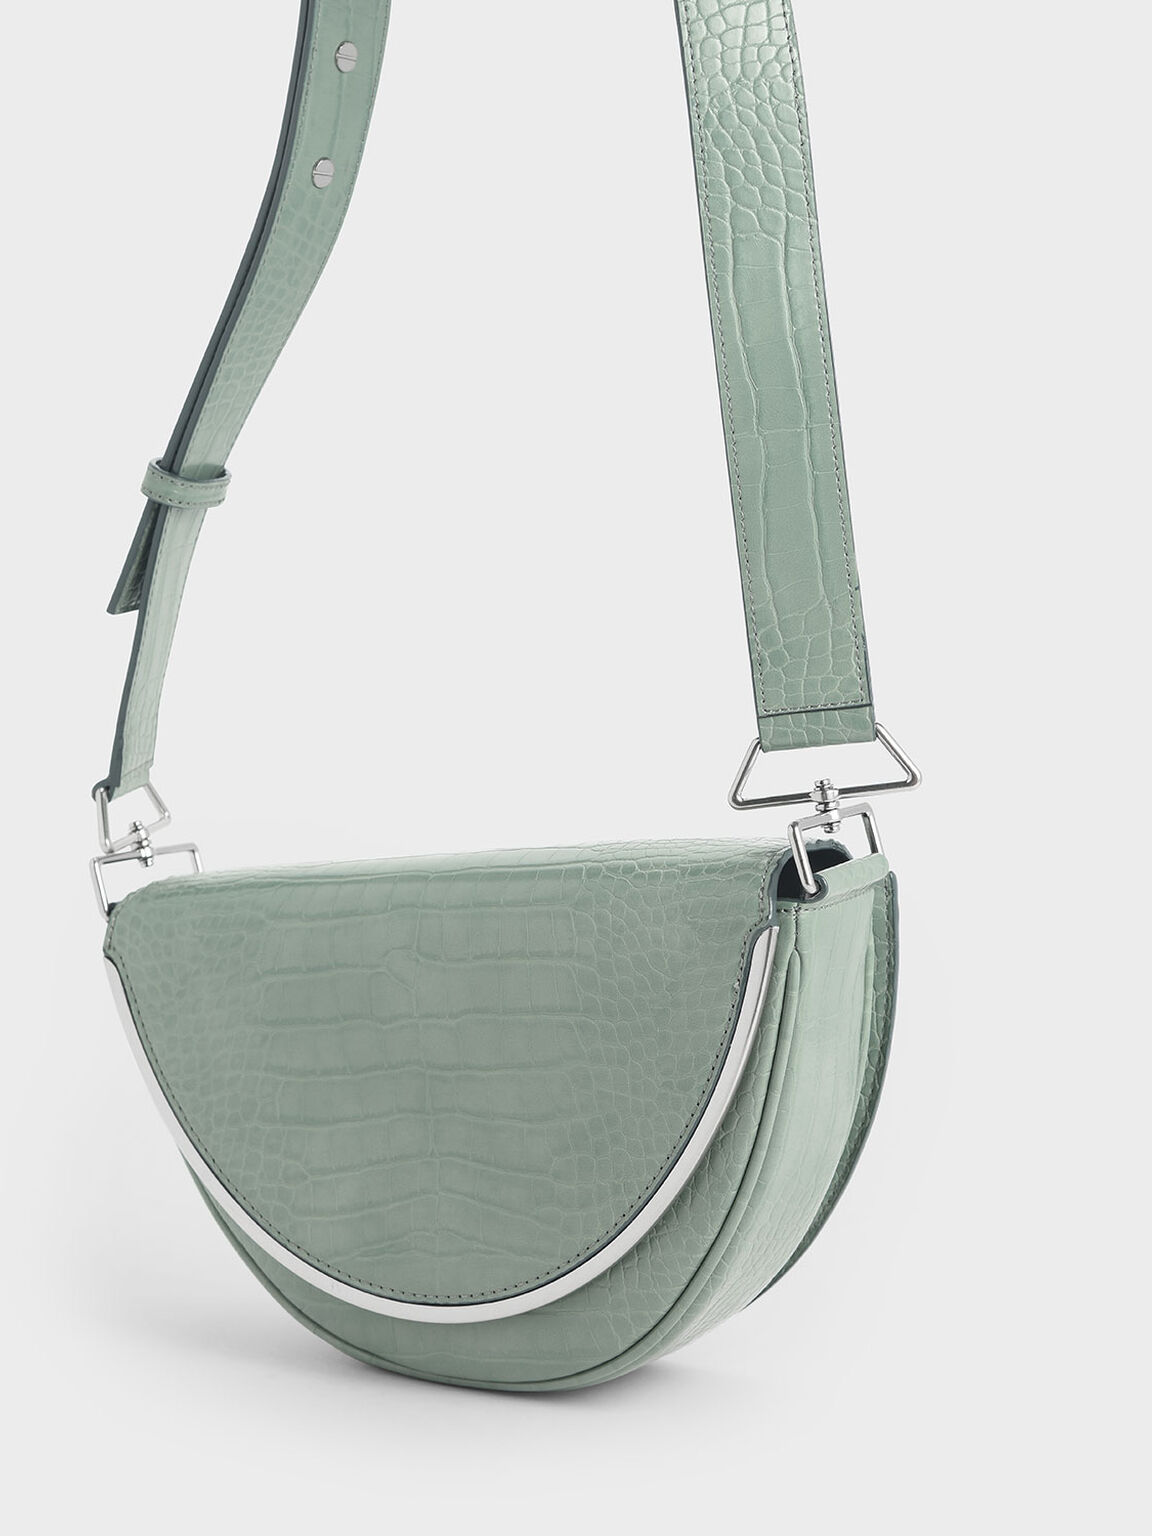 Croc-Effect Semi-Circle Crossbody Bag, Sage Green, hi-res